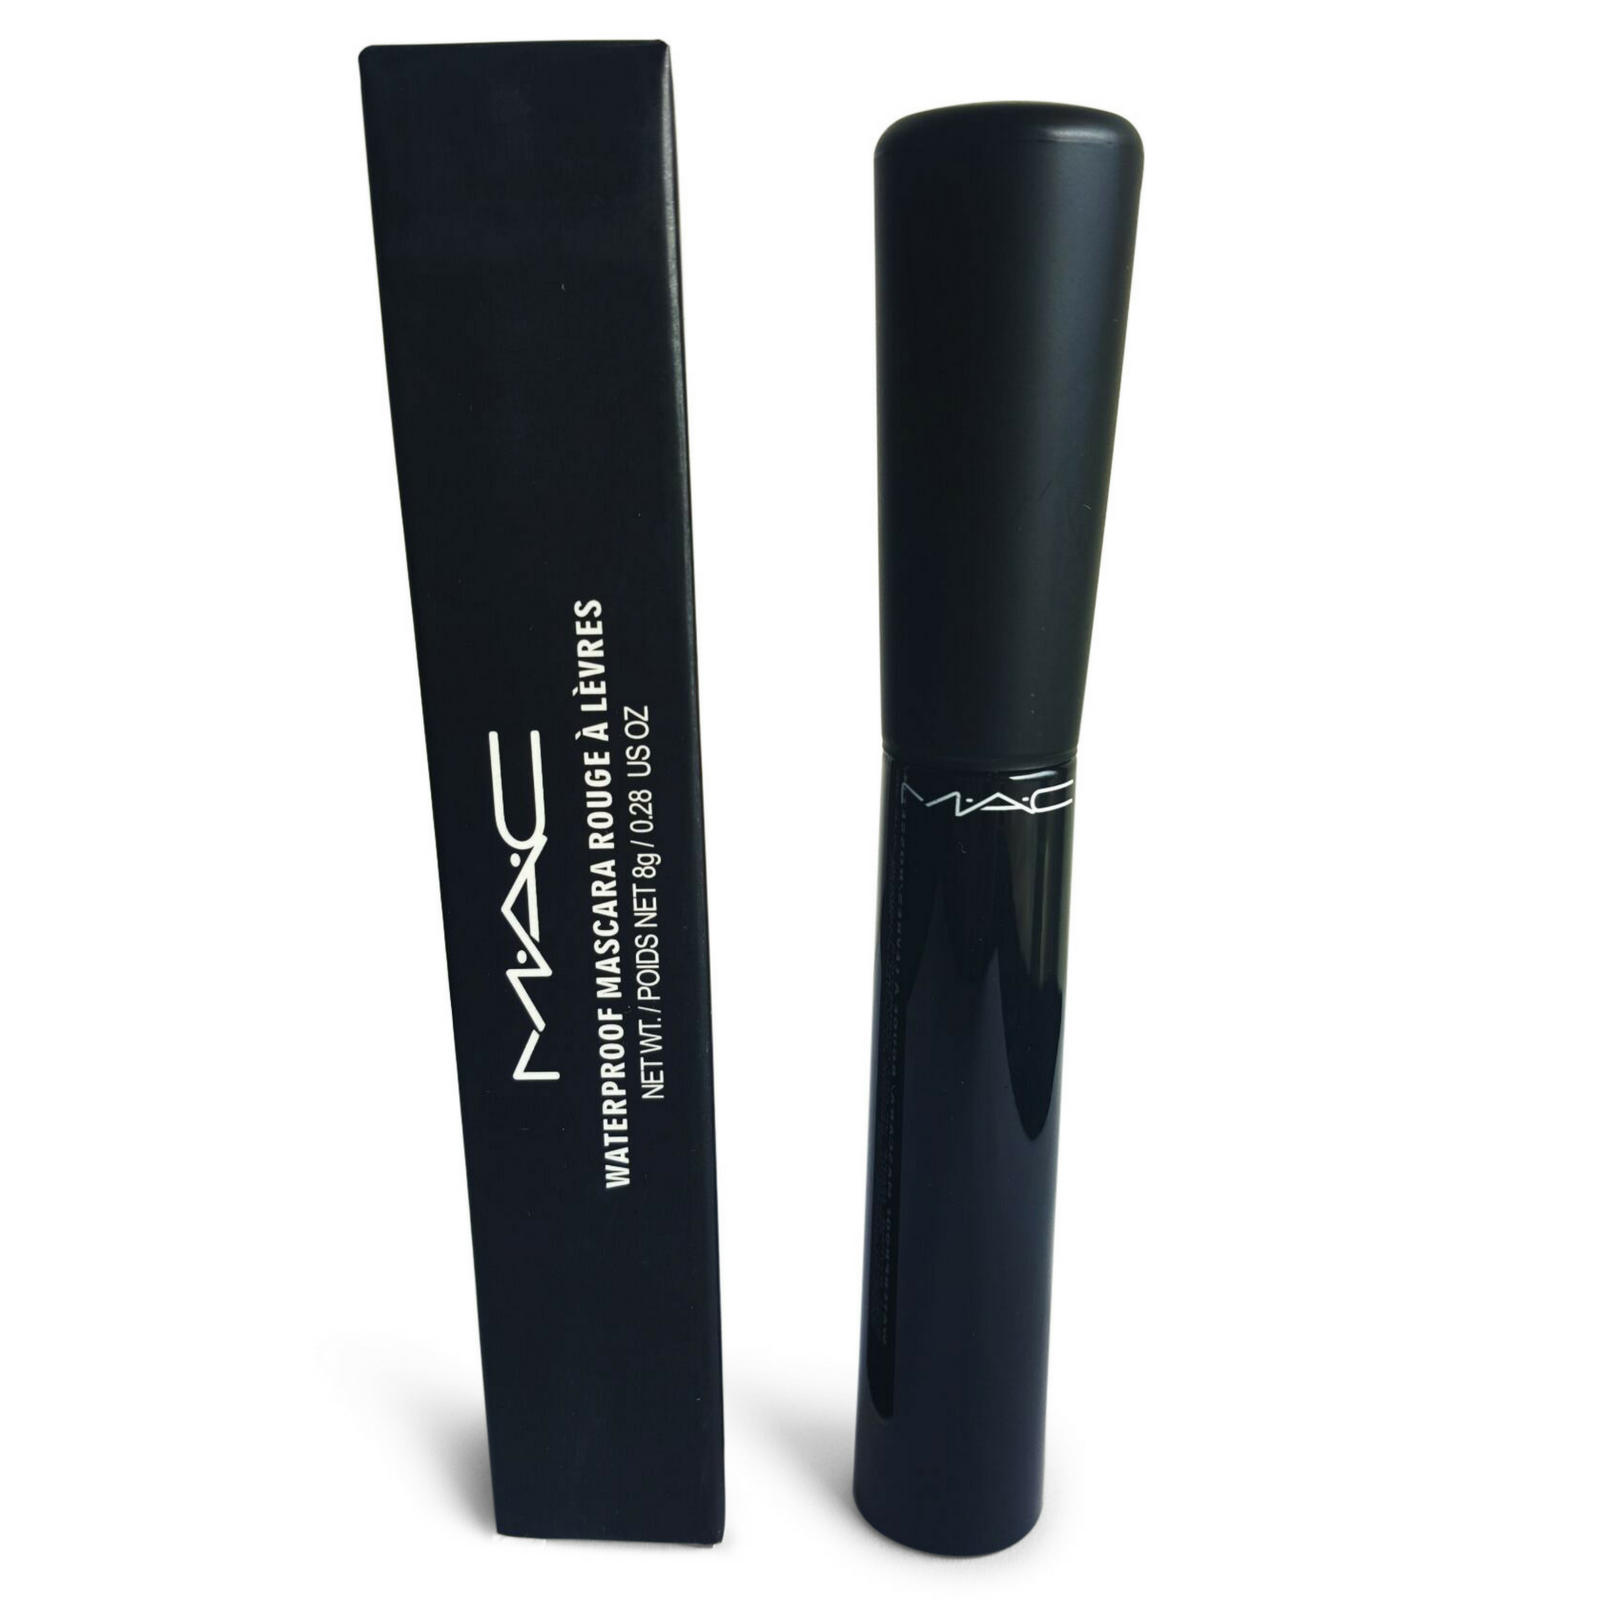 M.A.C Waterproof Mascara (BLACK) - Discounted Makeup, Cosmetics, Beauty products, Aussie Stock, Free Shipping in Australia